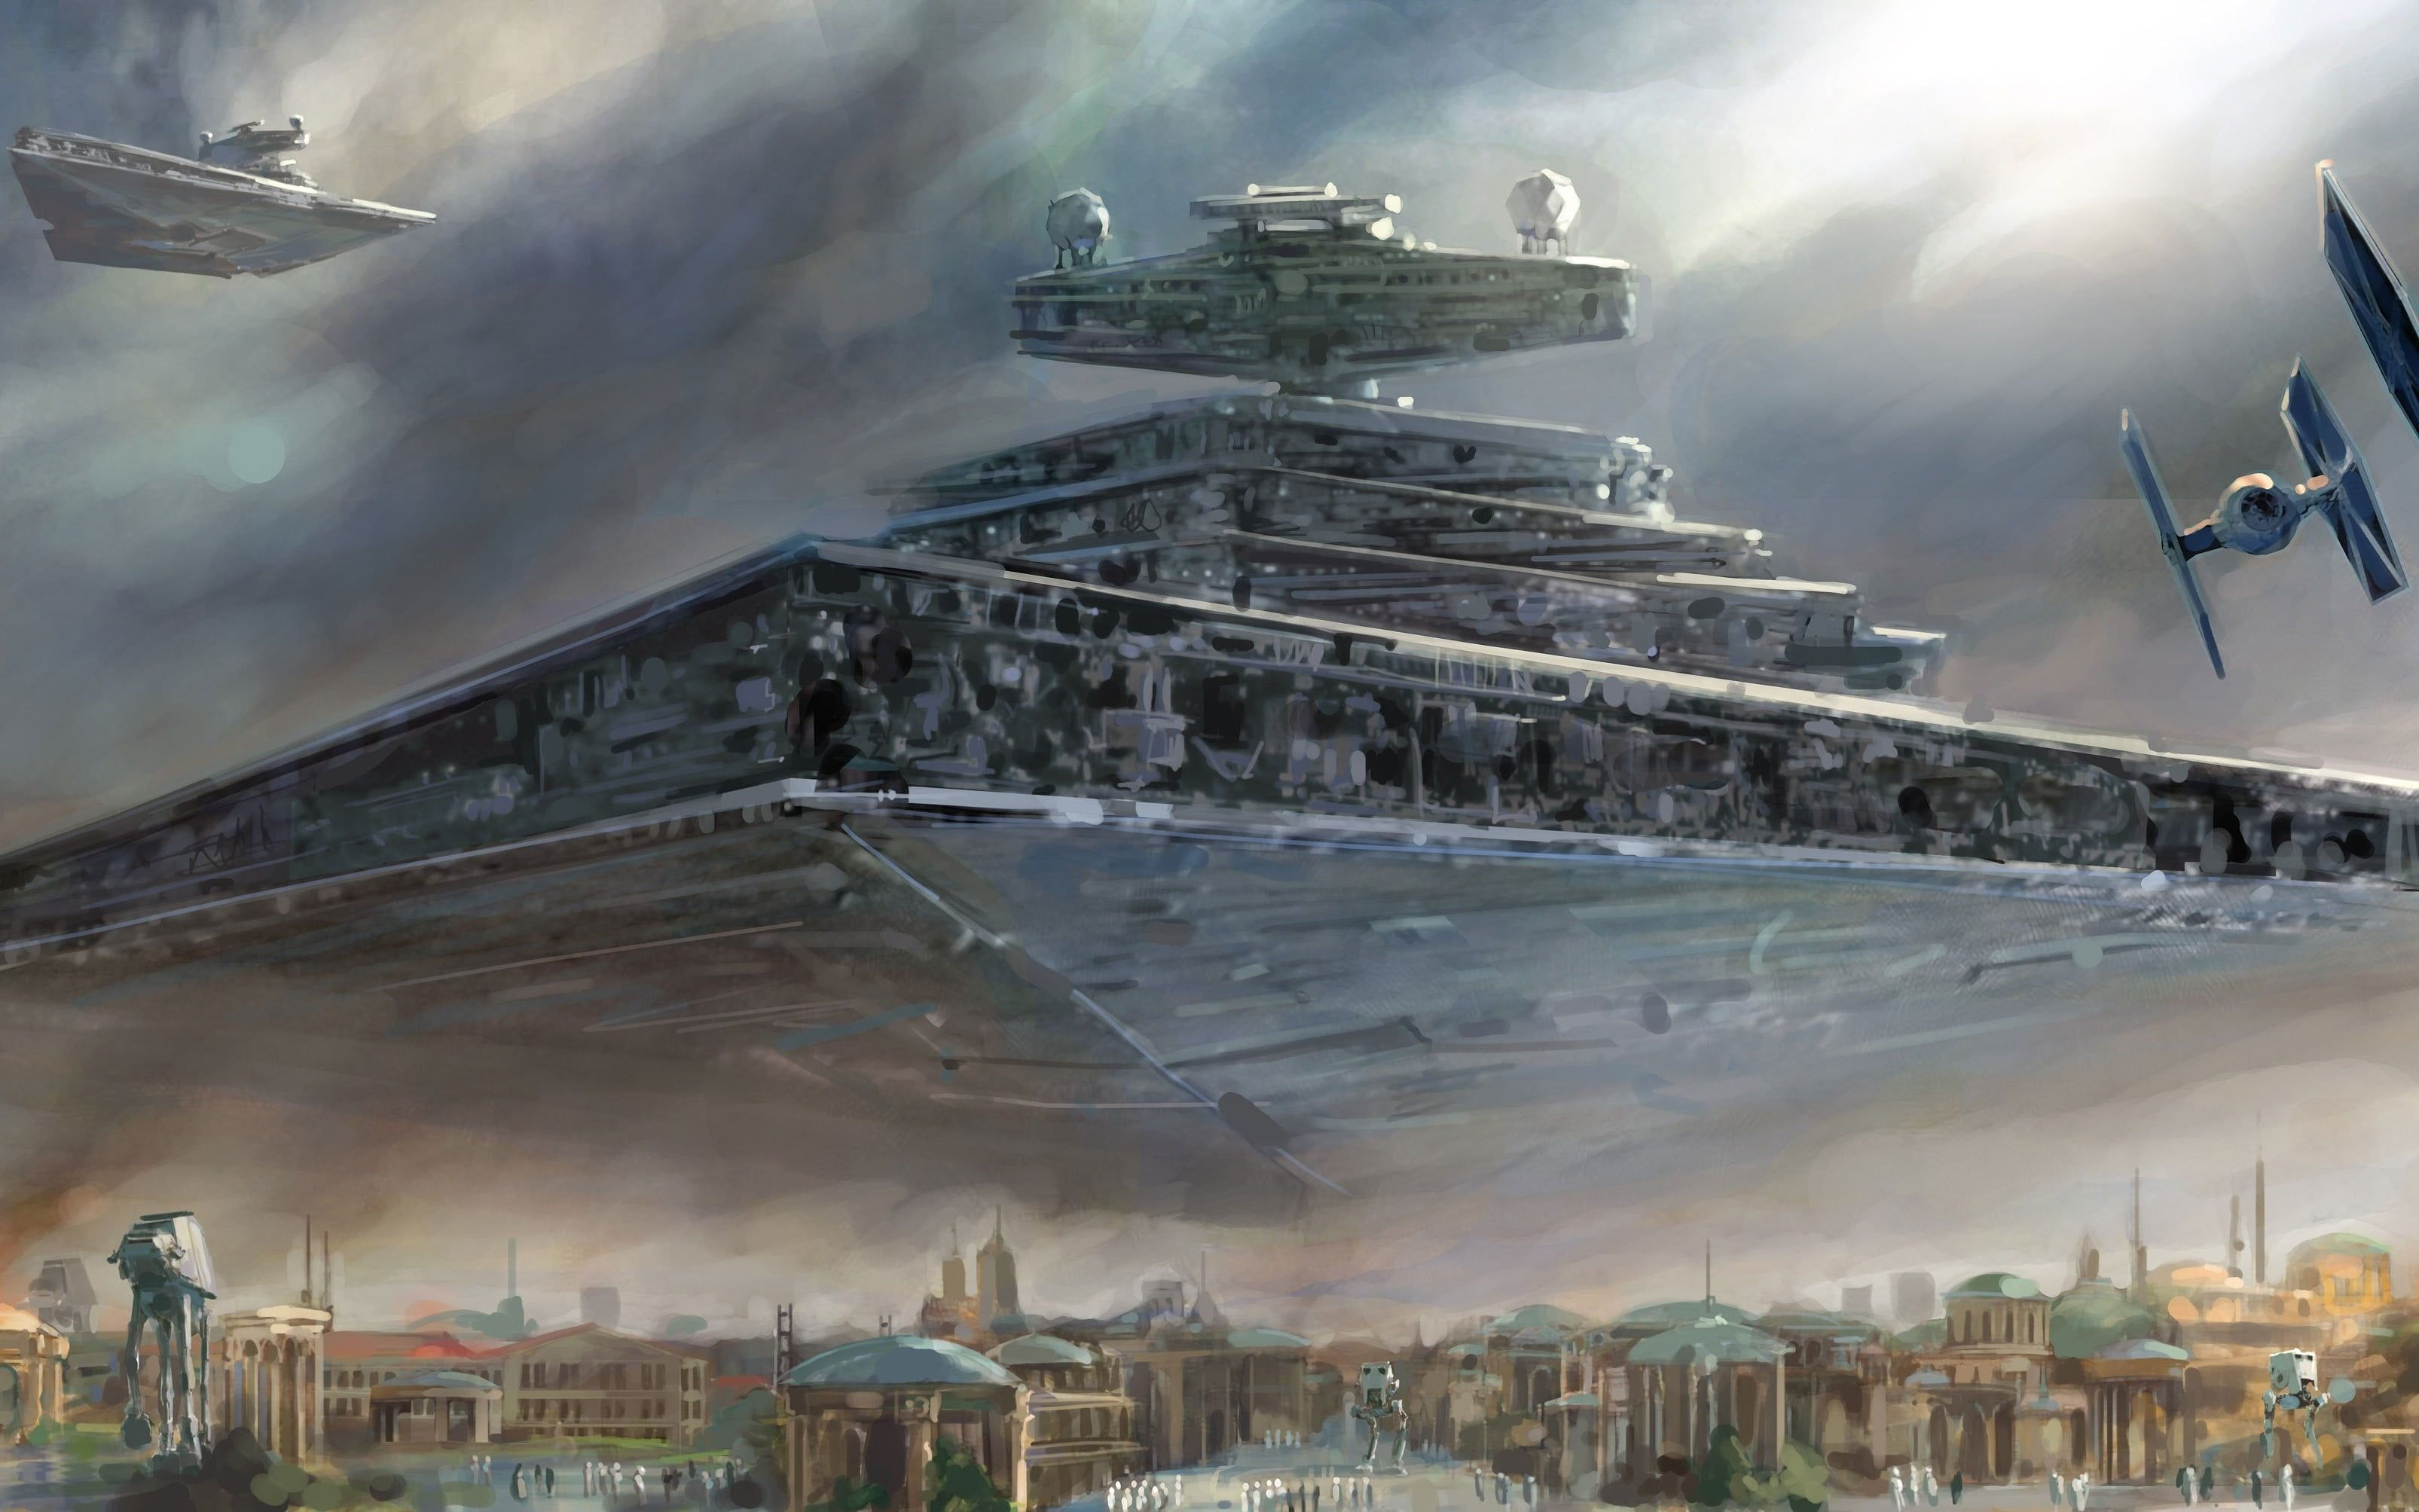 Star Wars Ships Wallpapers Top Free Star Wars Ships Backgrounds Wallpaperaccess